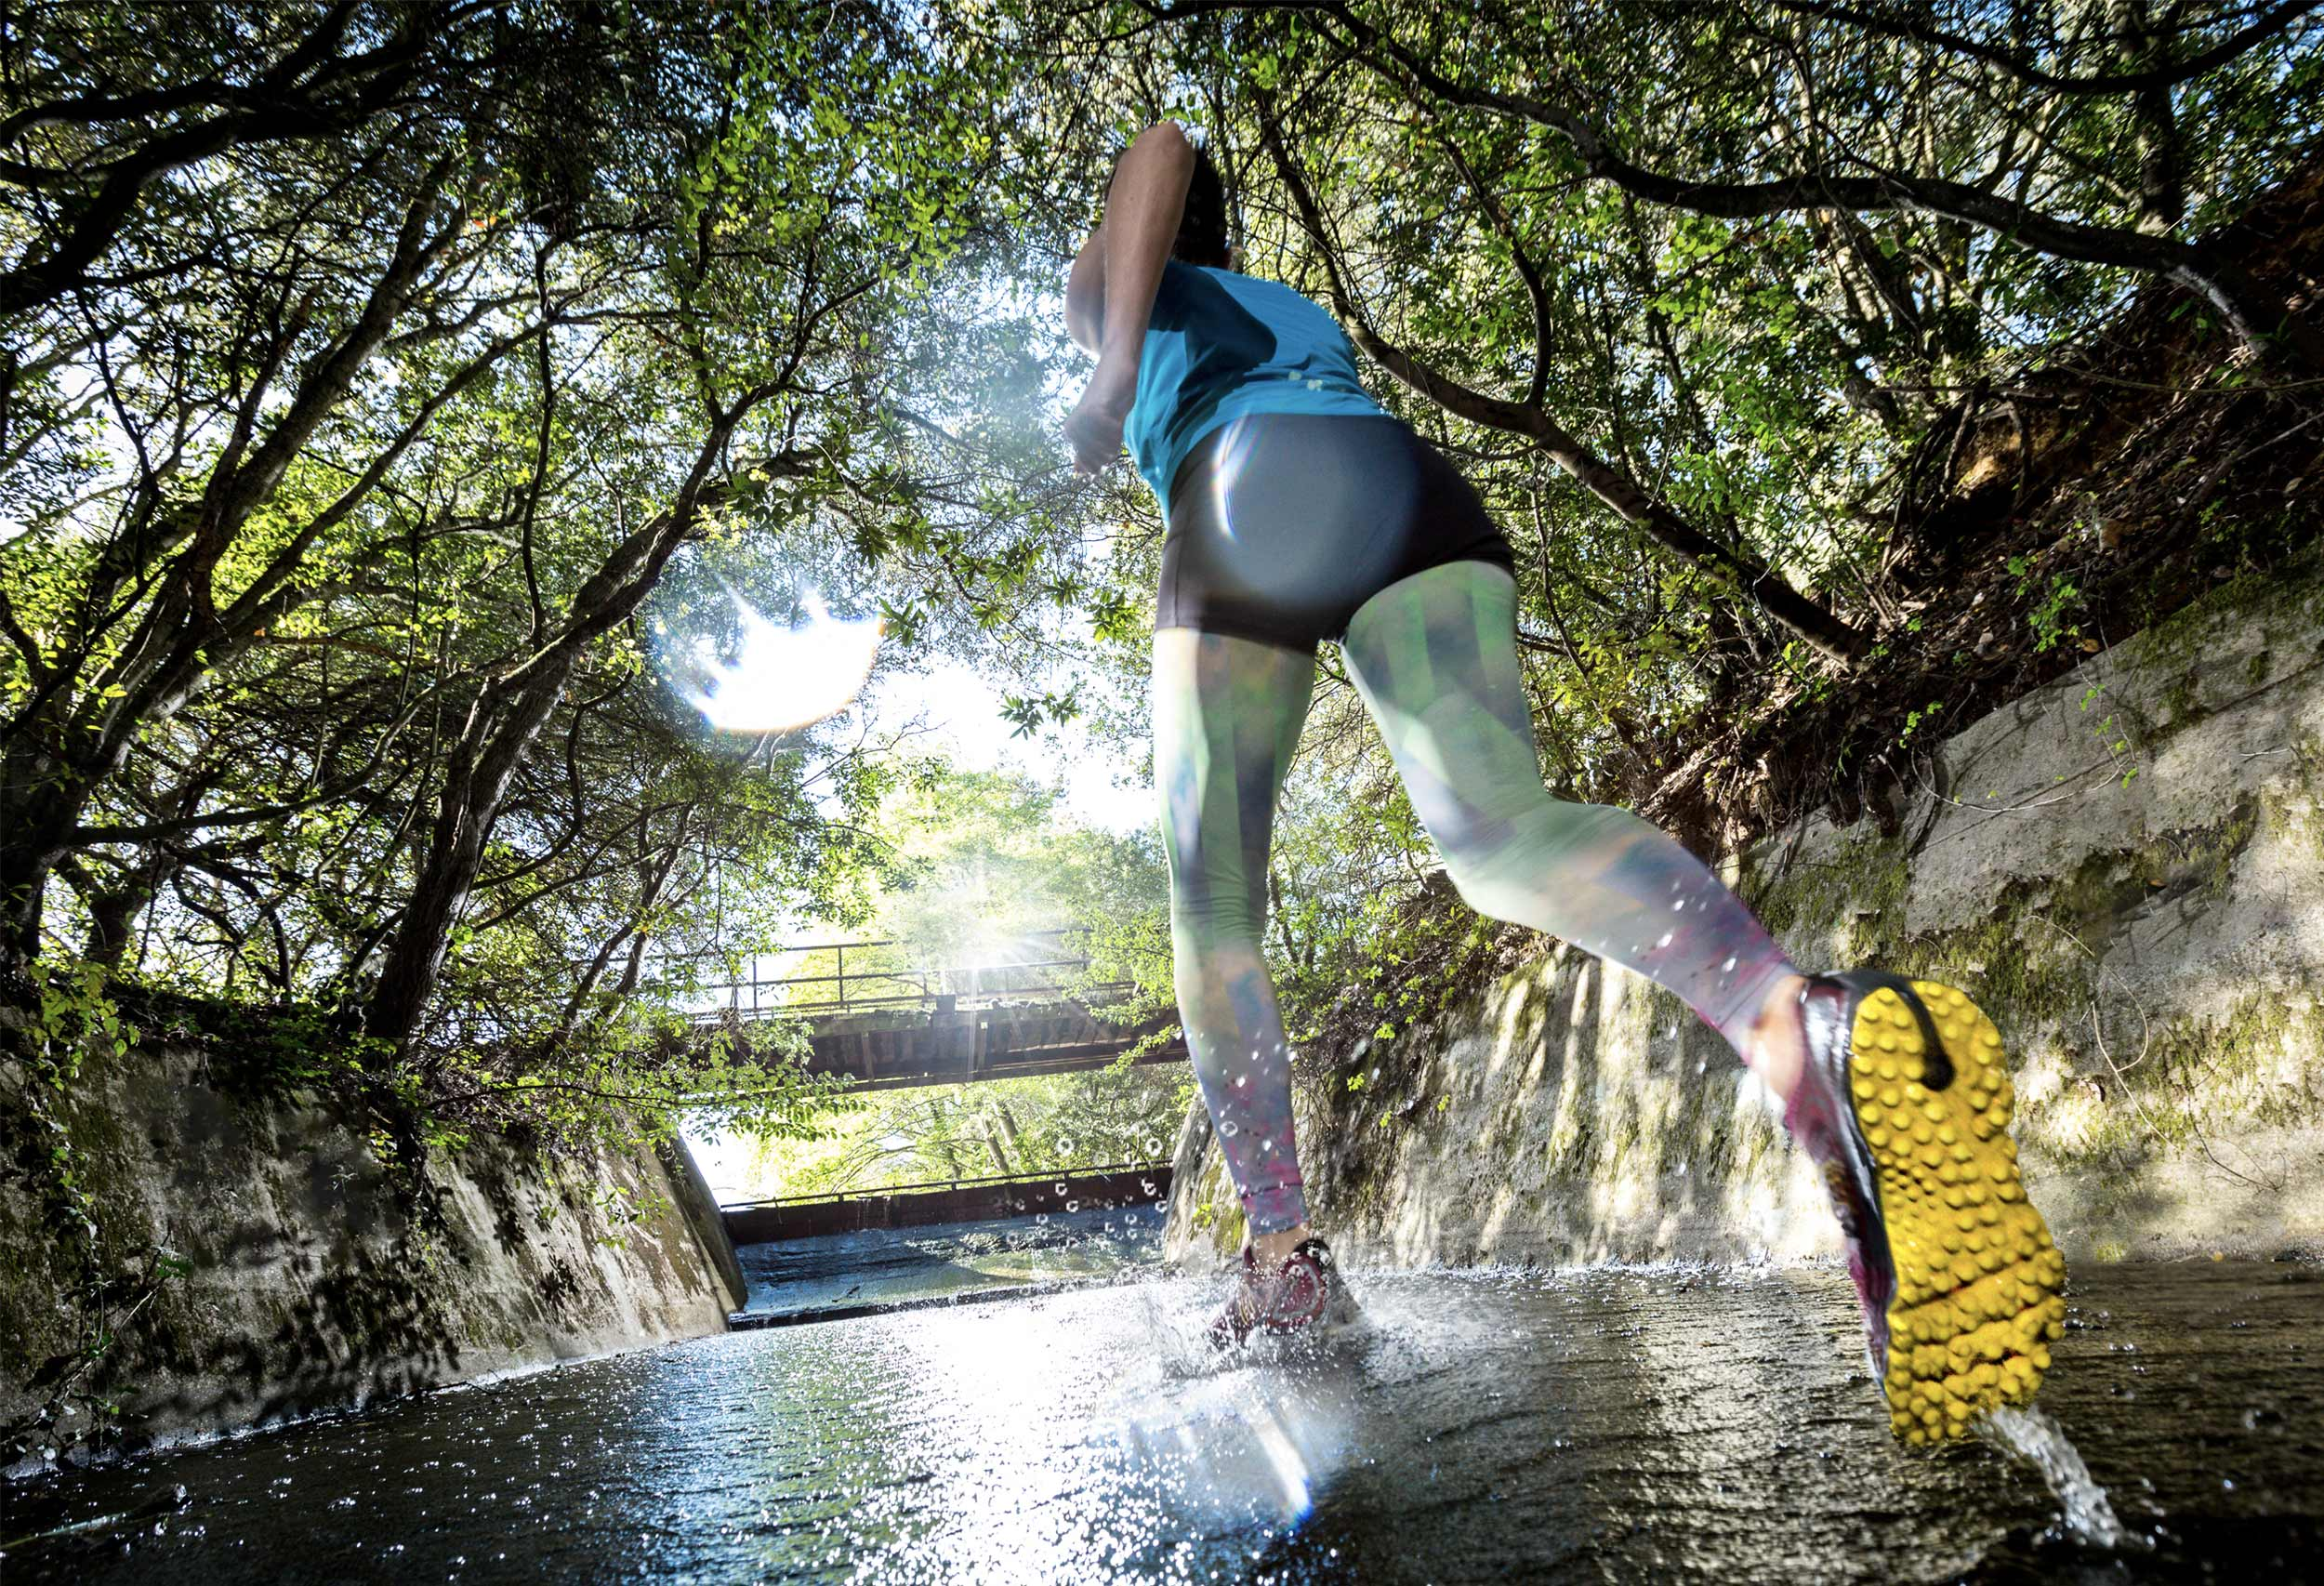 WomanRunningSplash2_JMichaelTuckerPhotography.jpg